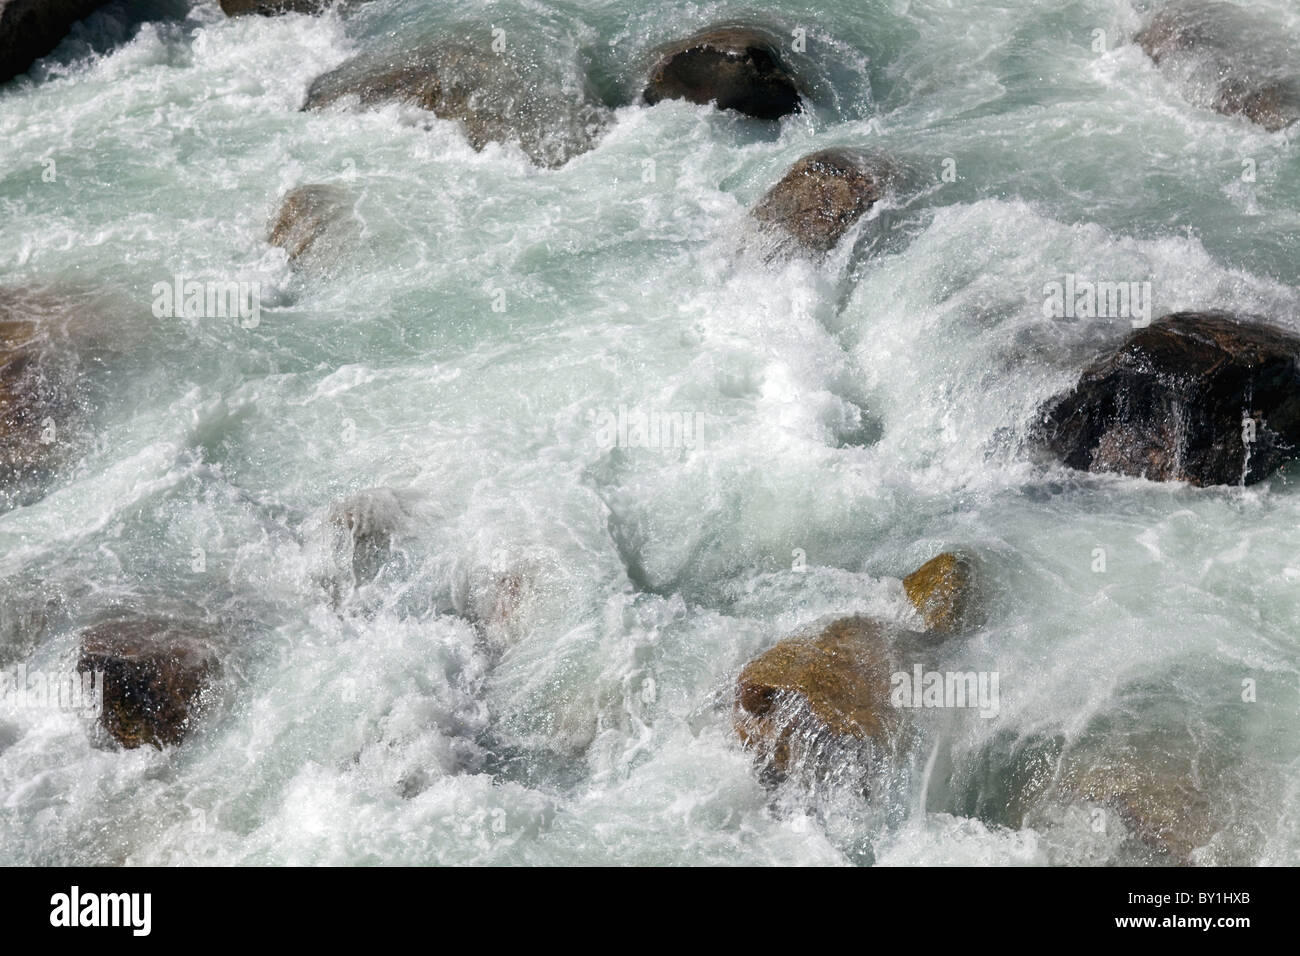 Nepal, Everest Region, Khumbu Valley.   Fast flowing glacially cold waters flowing down the Everest valley - Stock Image